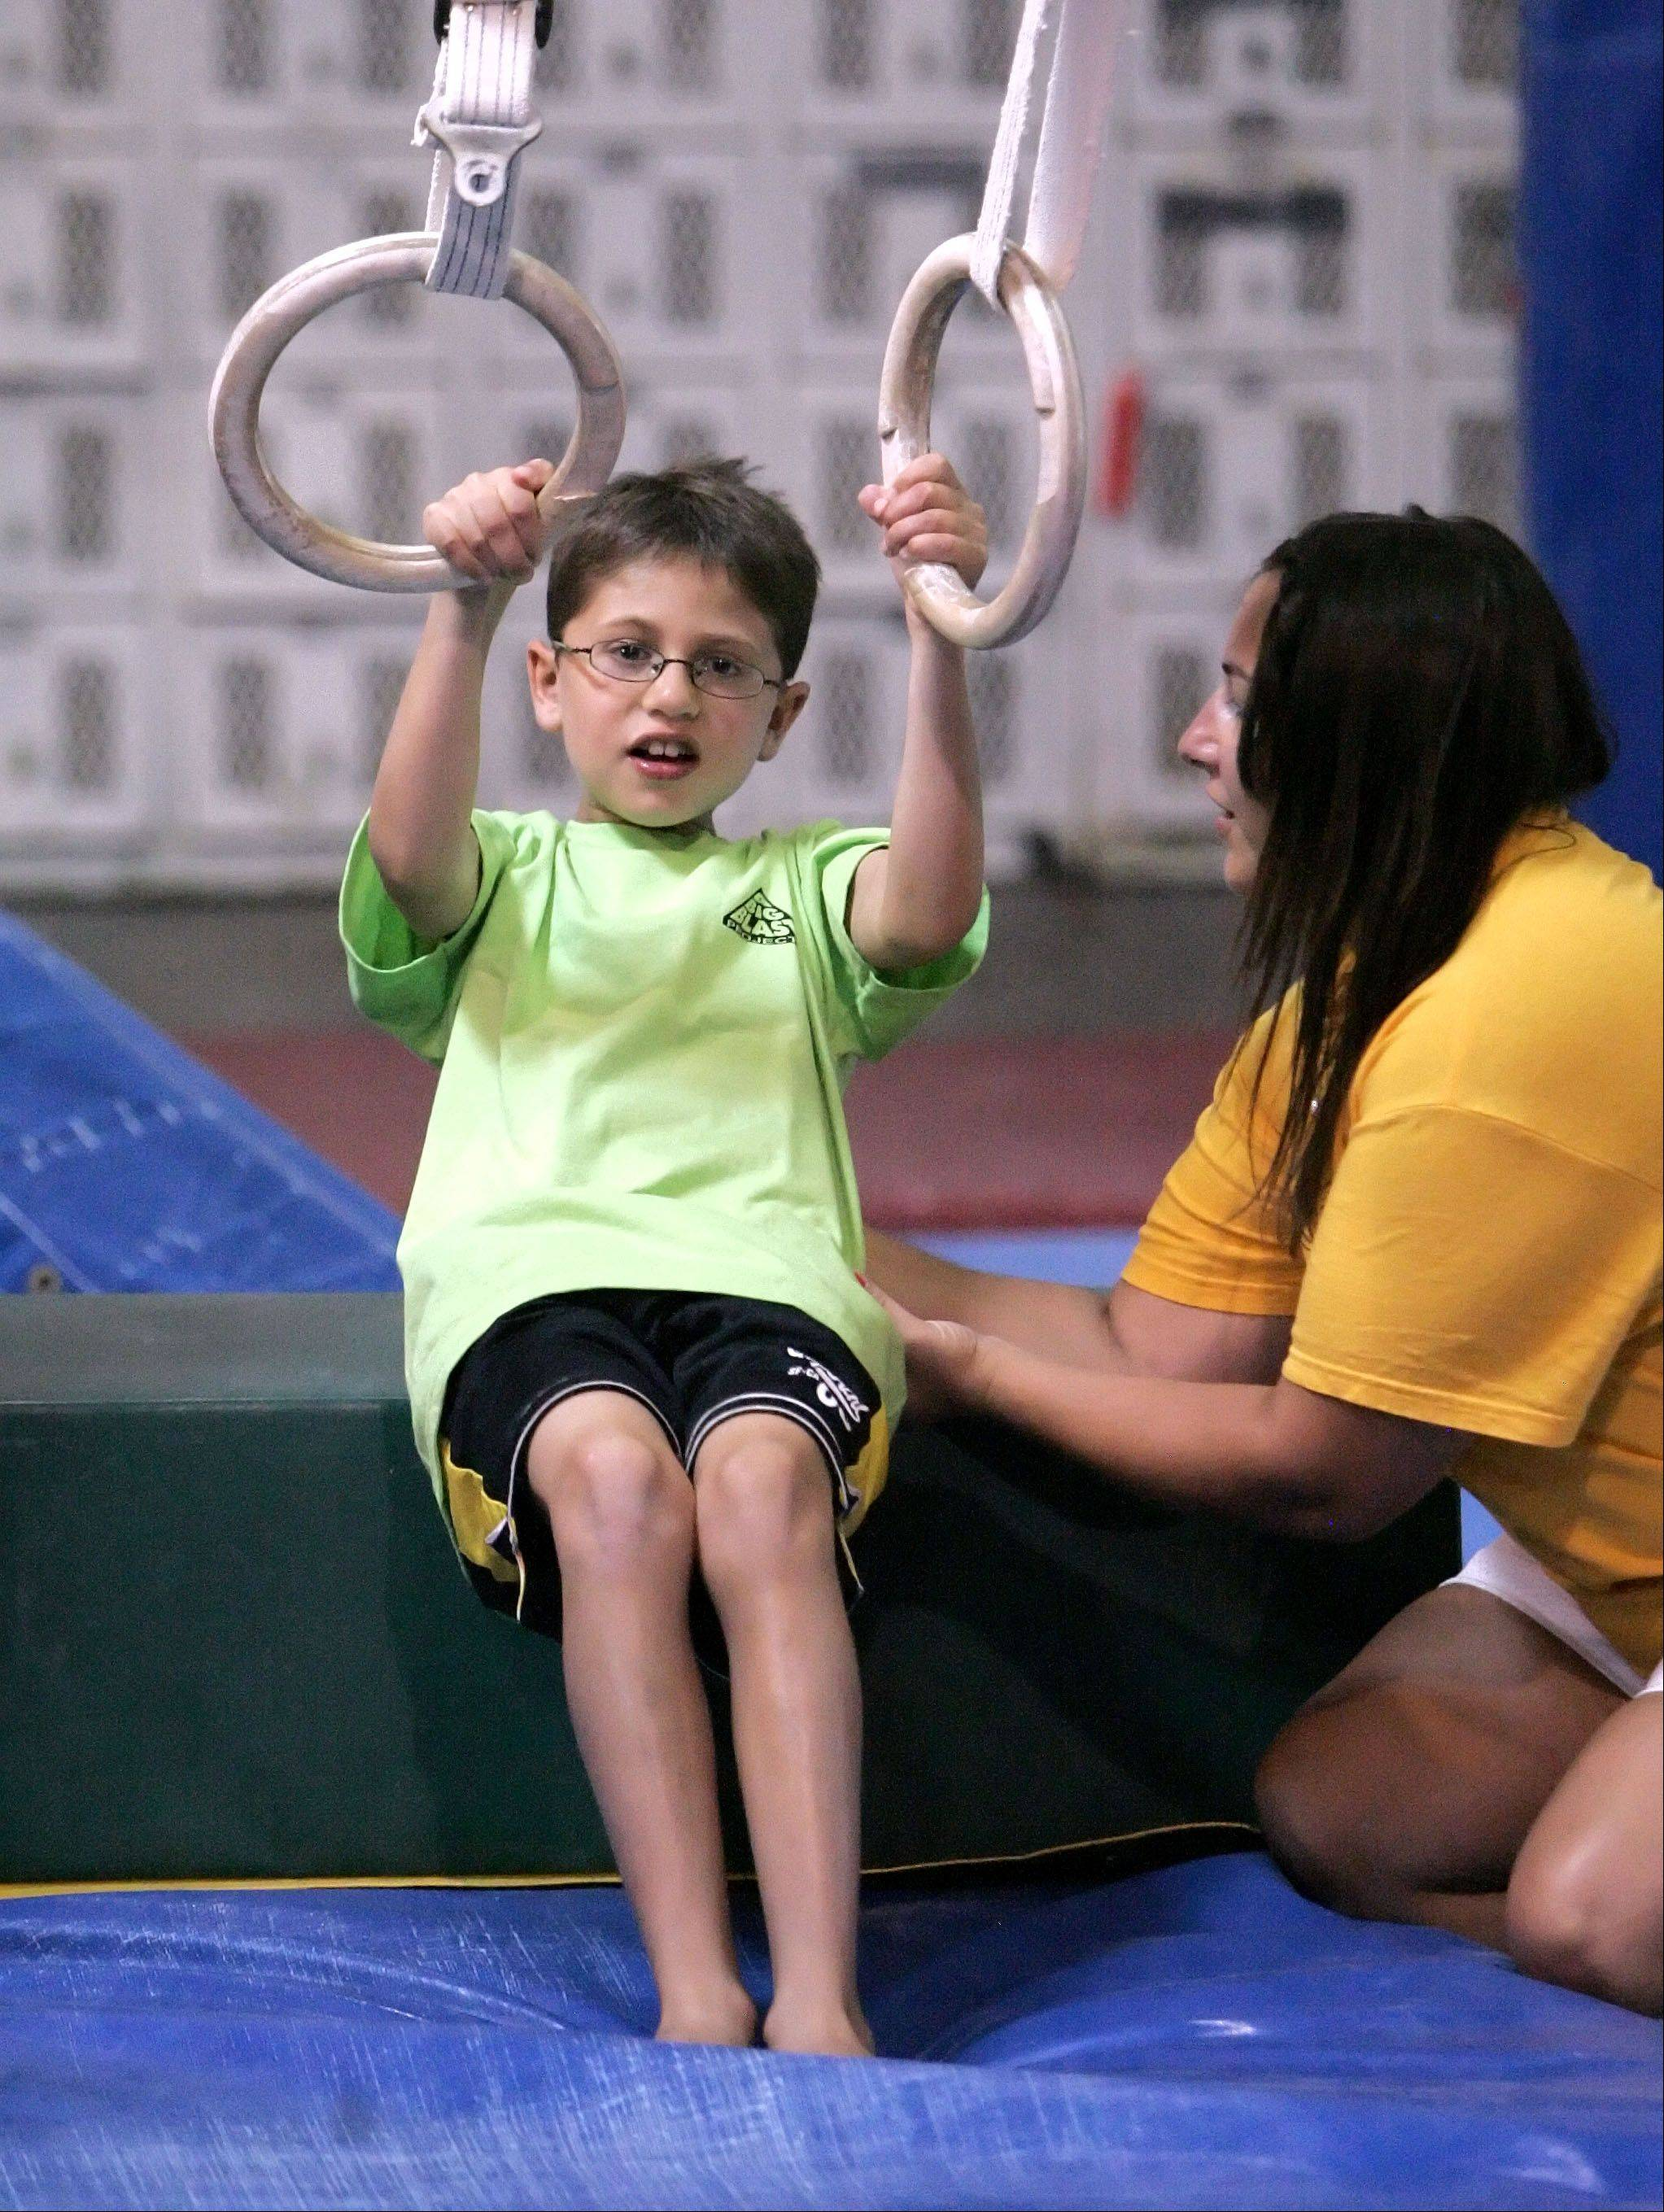 Steve LundyColin Brown, 8 of Arlington Heights, left, works on the rings with occupational therapist Melissa Deets of Greendale, Wis., at the Gym Spot in Mundelein as part of A Big Blast Project. The program uses gymnastics as therapy for kids with developmental issues.